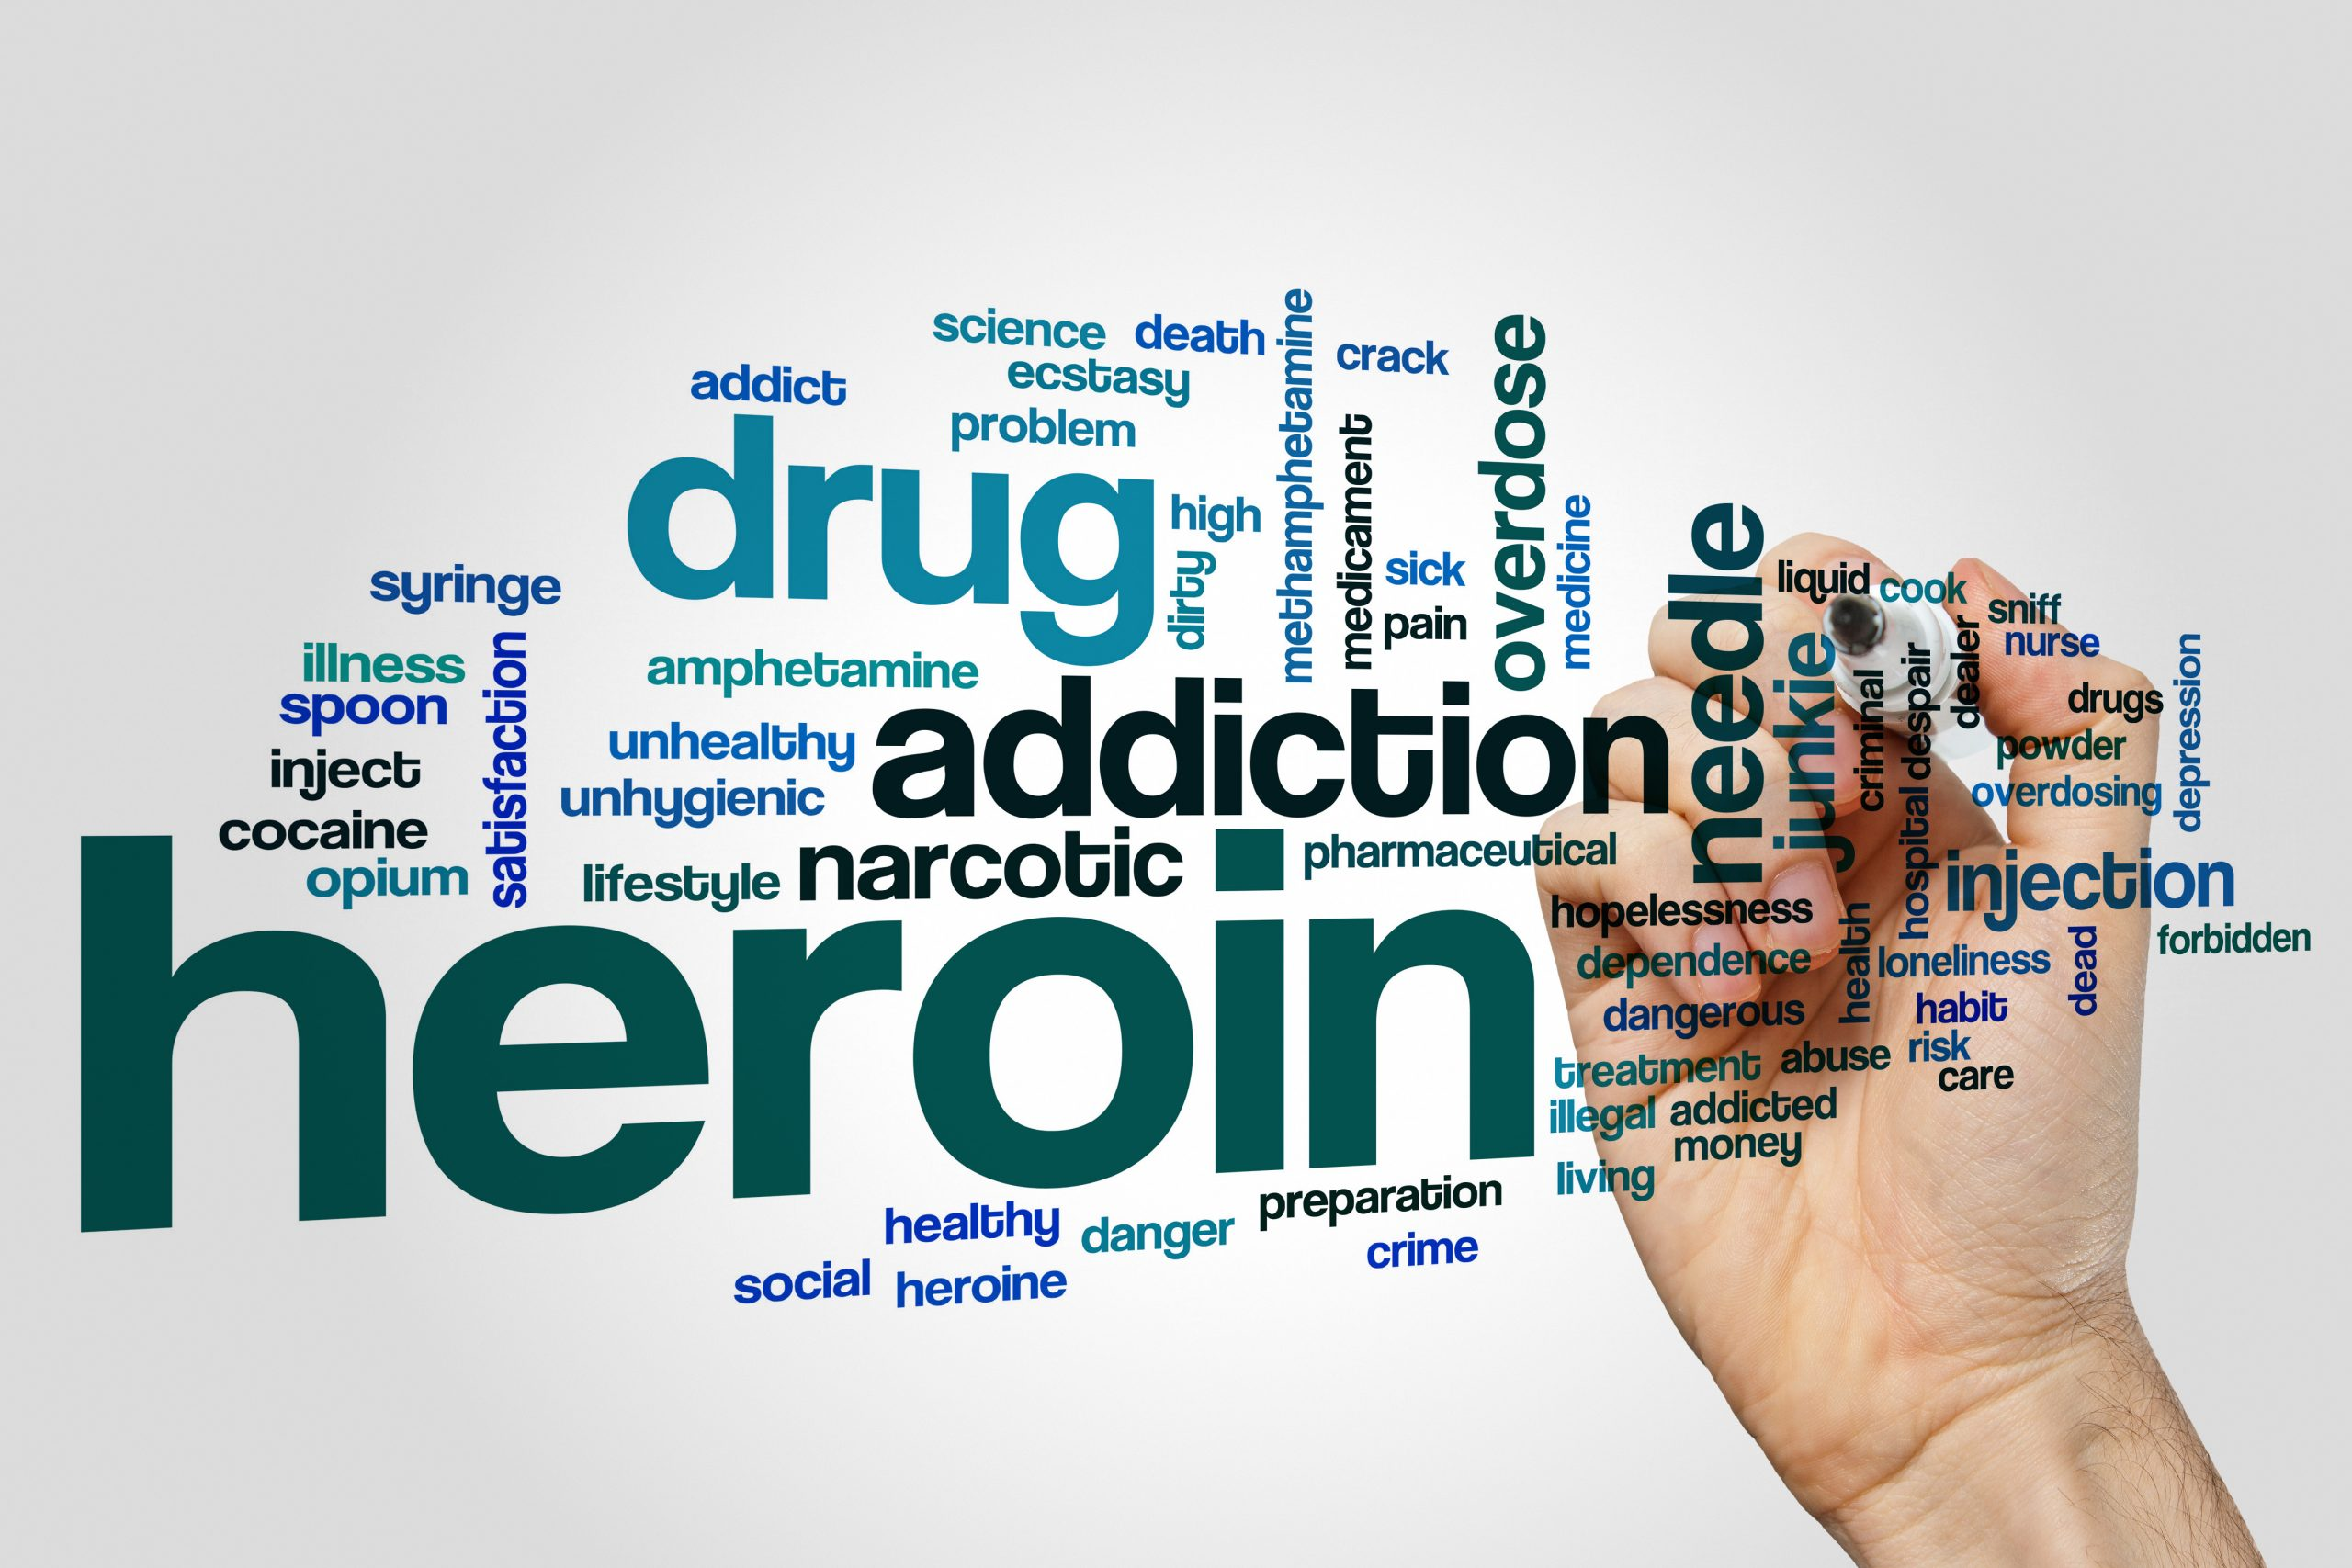 Heroin Use and Dependence